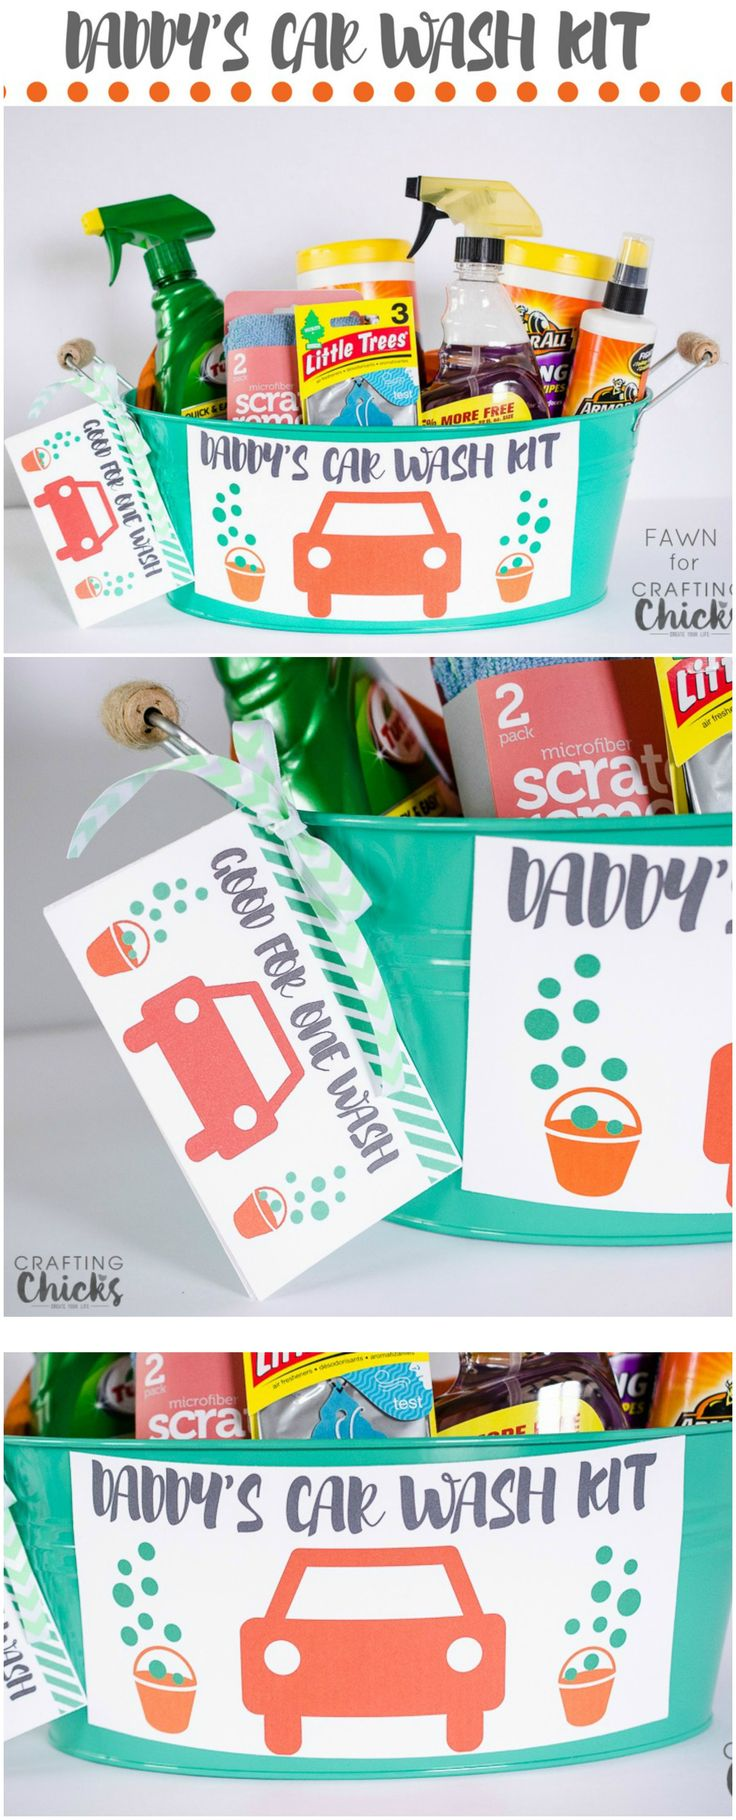 Quick and easy Father's Day gift idea. Put together a quick and easy Father's Day car wash gift basket for all the Dads in your life.